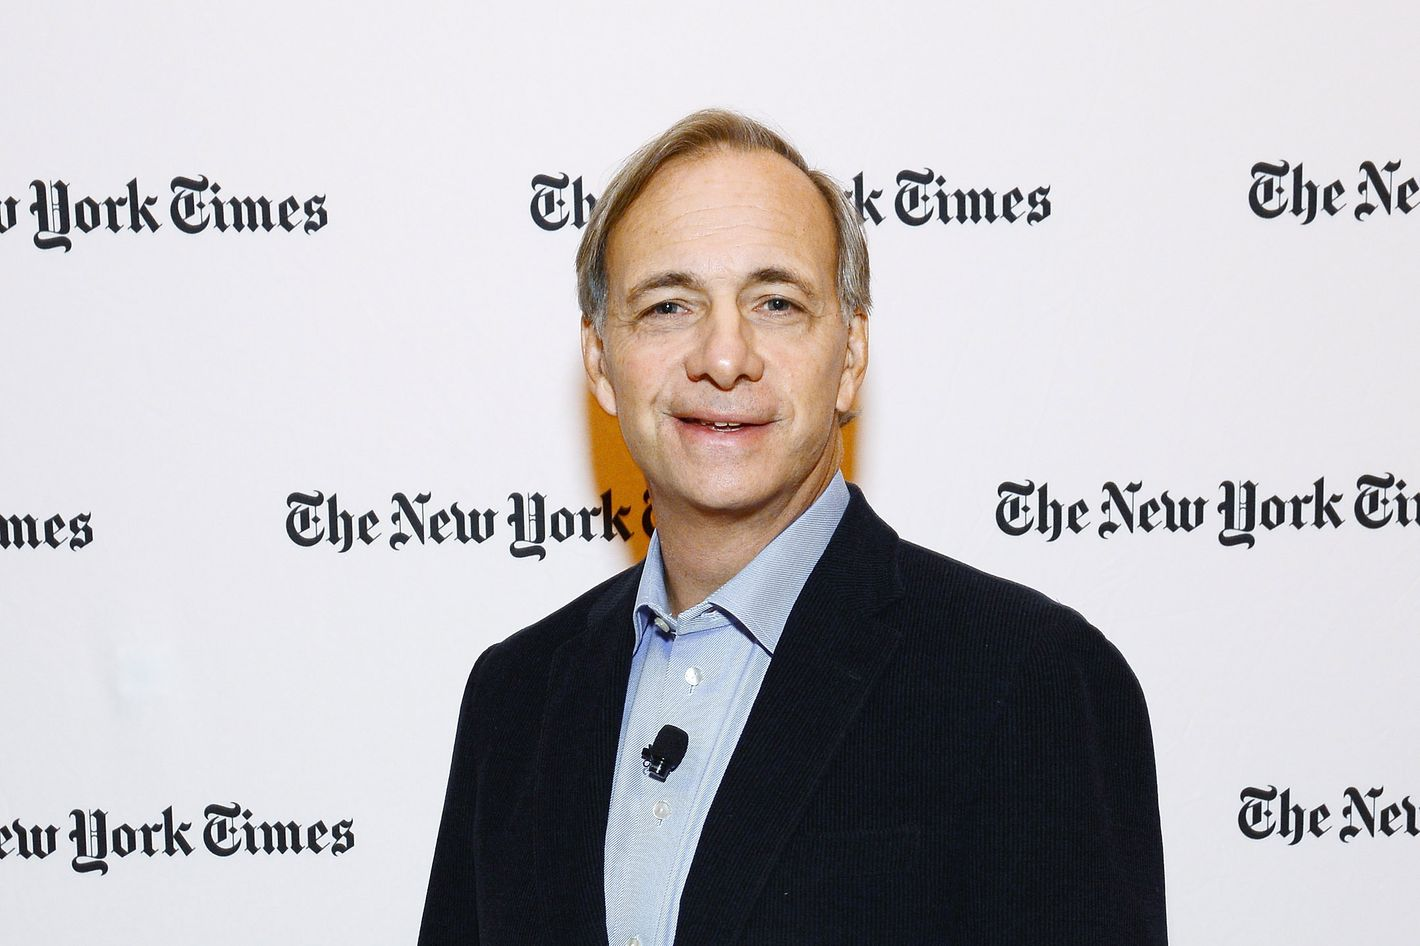 Founder of Bridgewater Associates Ray Dalio attends the New York Times 2013 DealBook Conference in New York at the New York Times Building on November 12, 2013 in New York City.